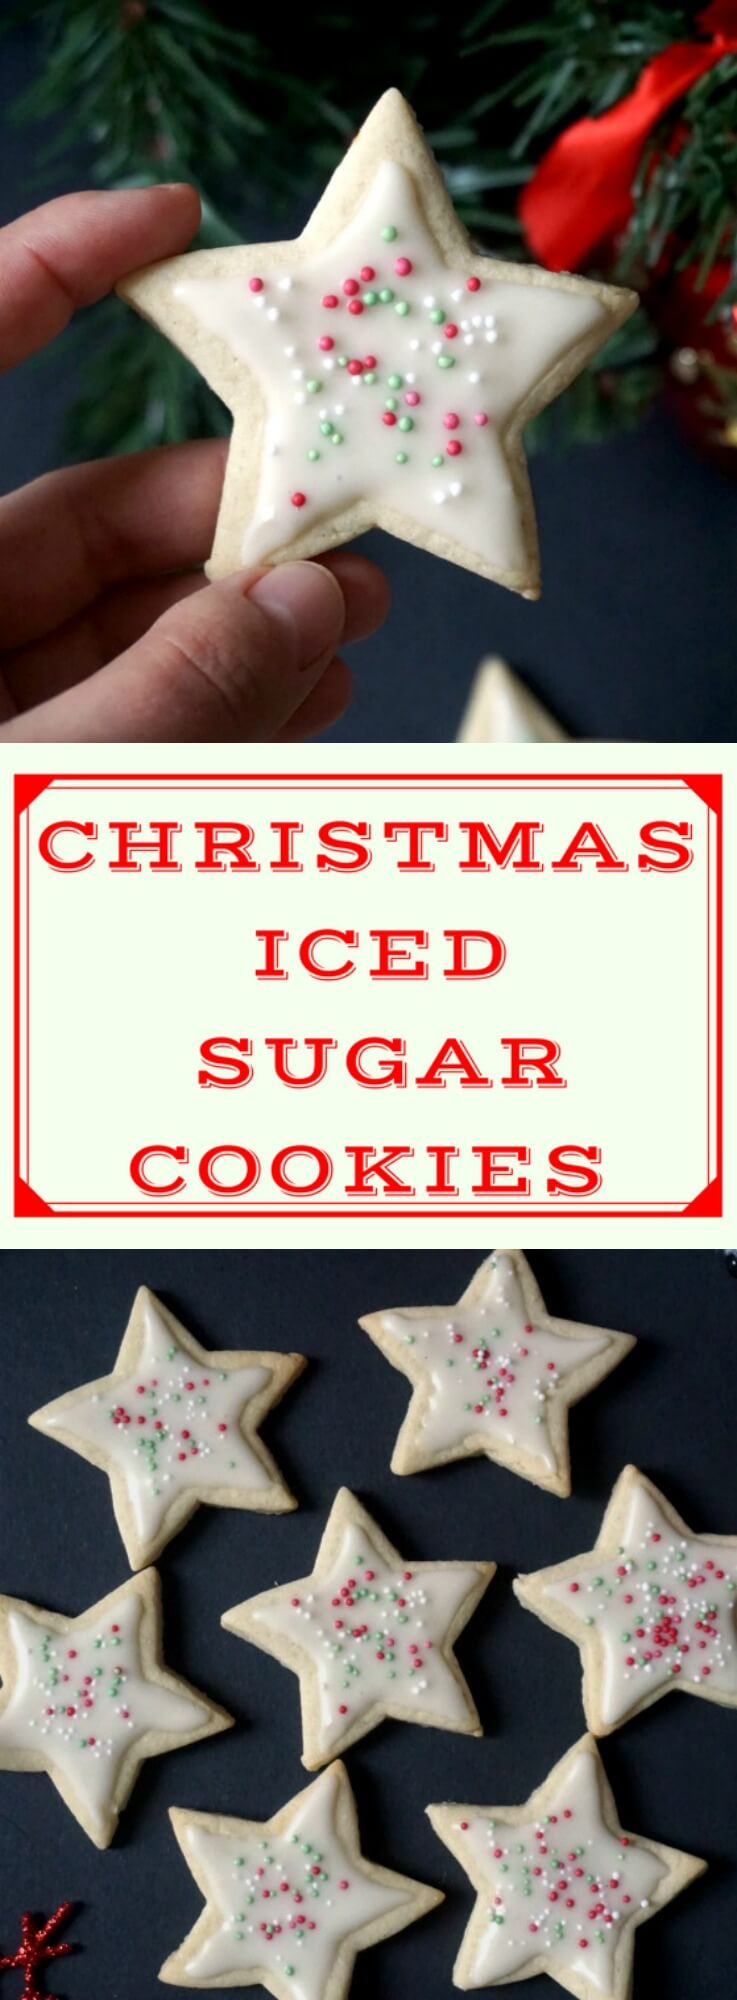 Christmas Iced Sugar Cookies, a star-shaped sweet treat for kids and grown-ups alike. Great as homemade edible gifts for families and friends.